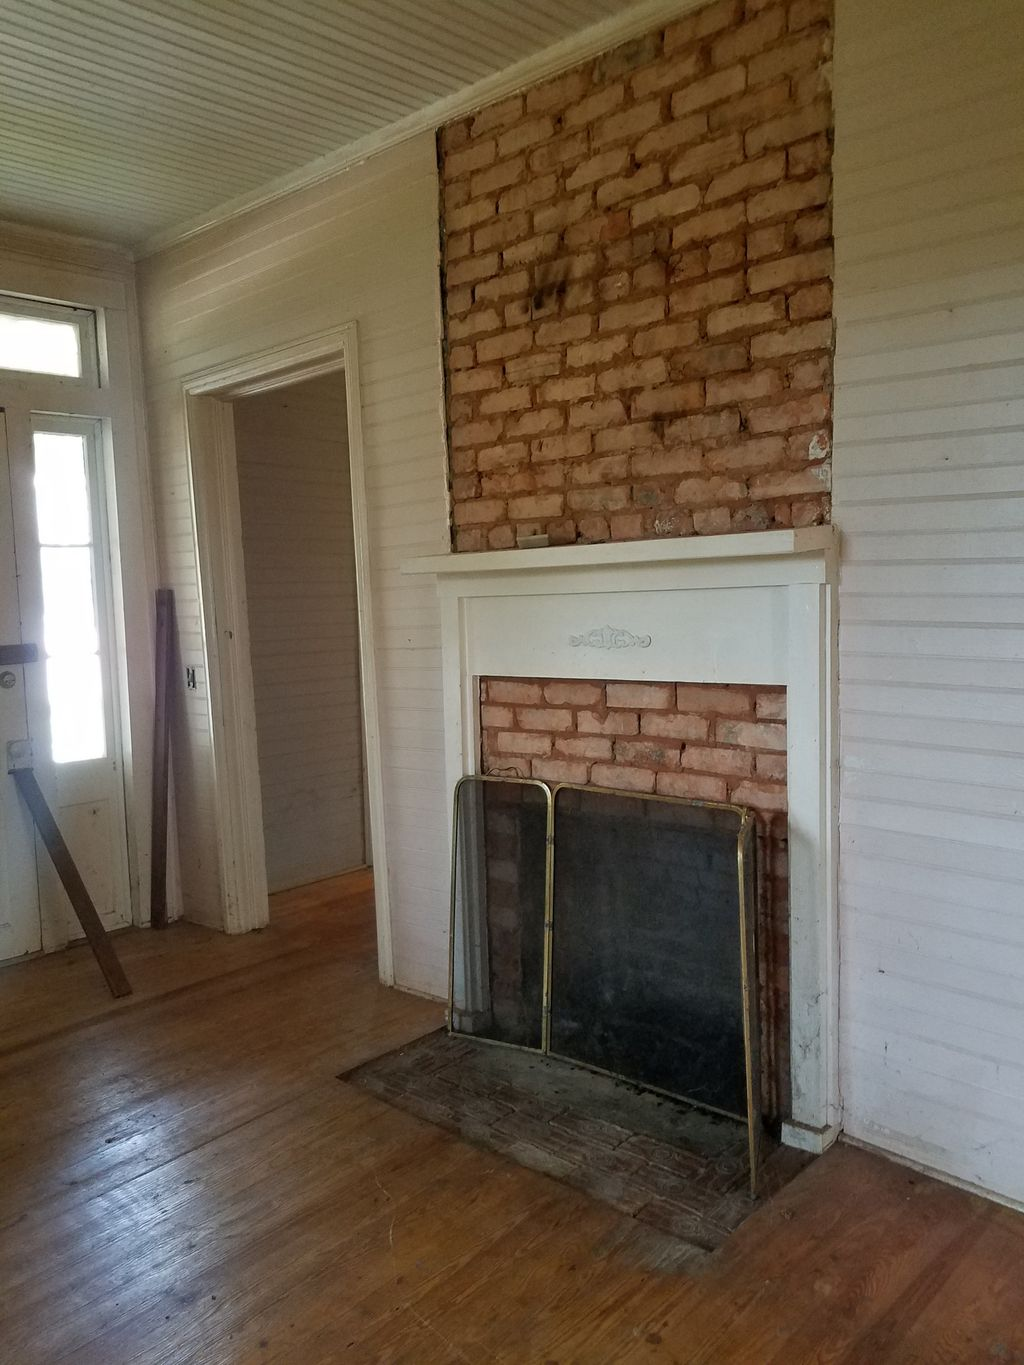 Fireplace Repair and Paint